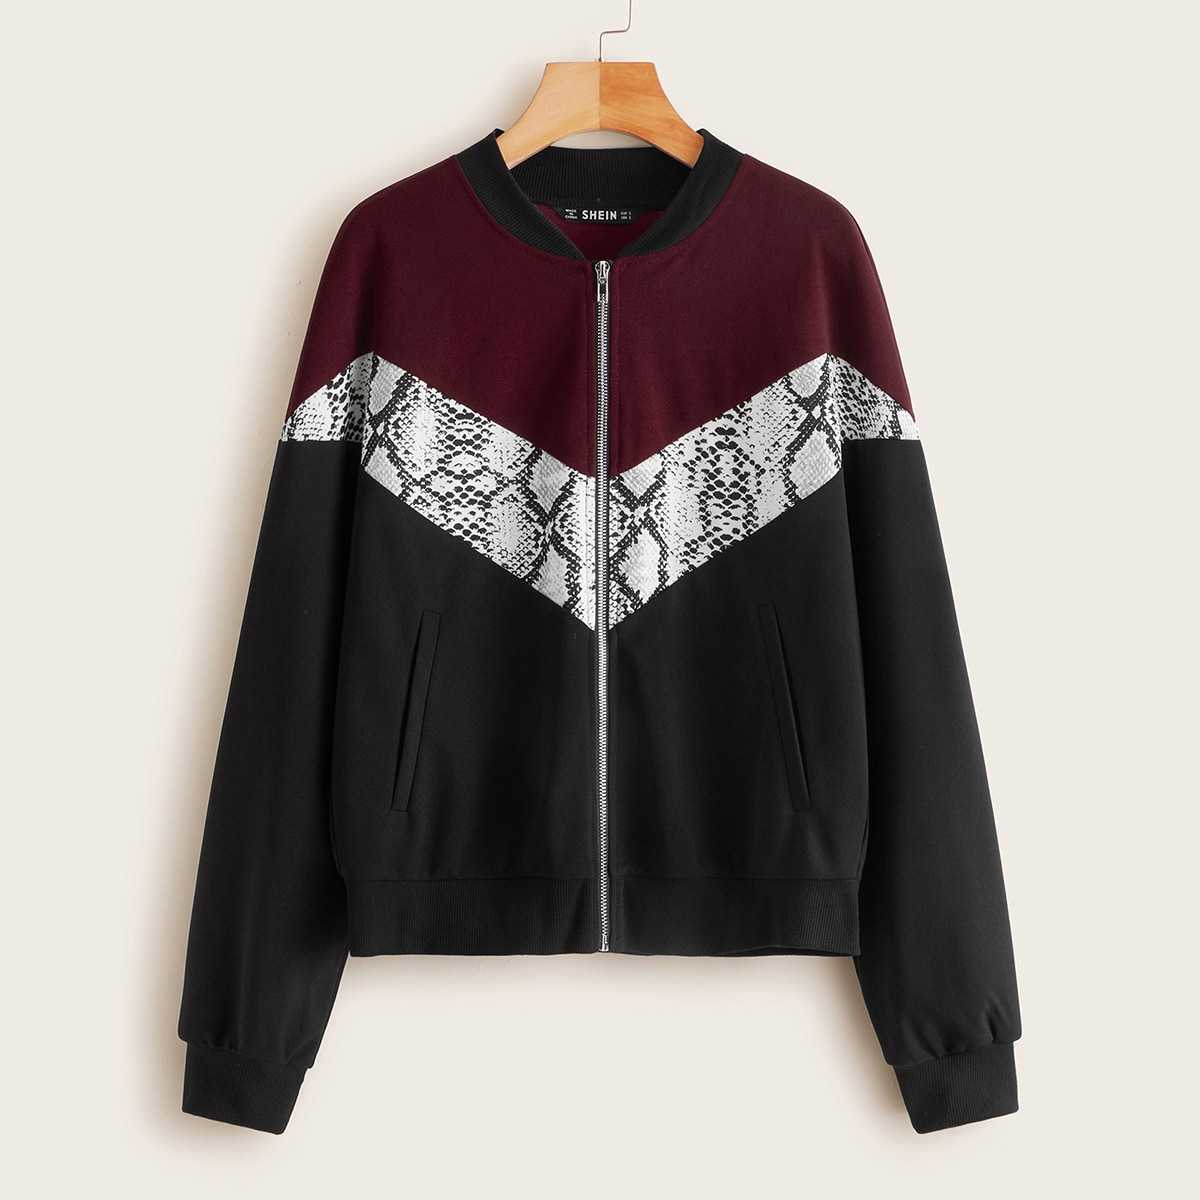 Snakeskin Print Colorblock Bomber Jacket in Multicolor by ROMWE on GOOFASH